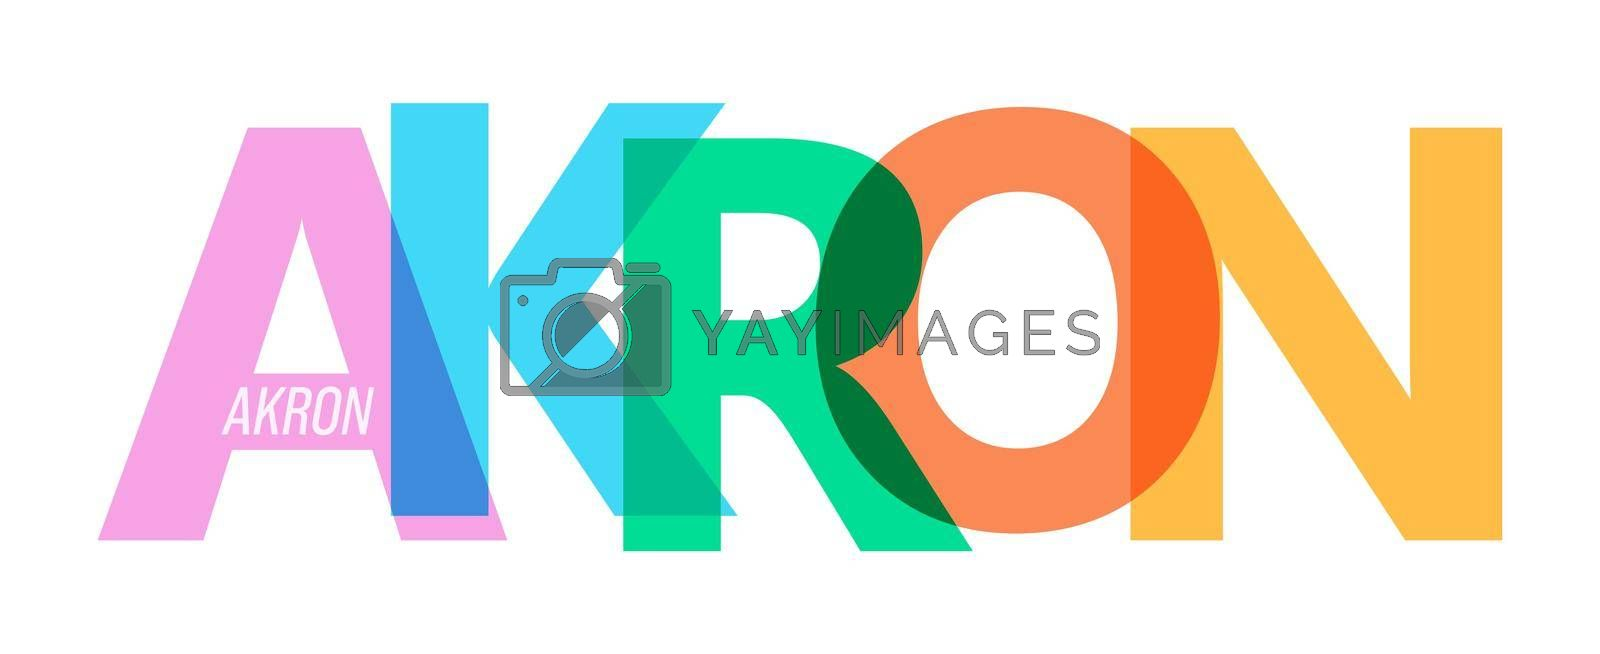 AKRON. Lettering on a white background. Vector design template for poster, map, banner. Vector illustration.